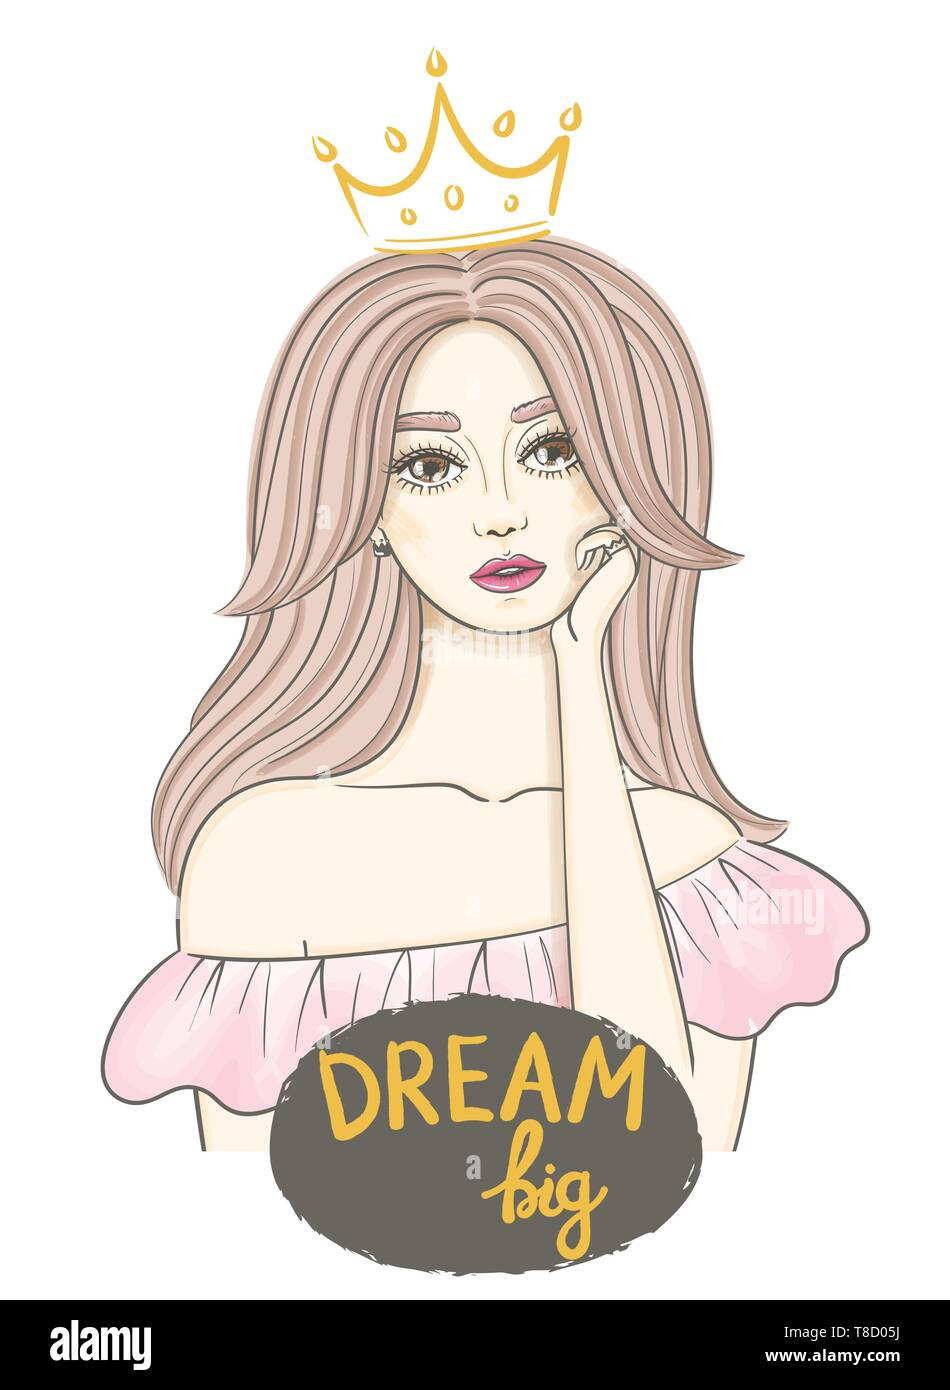 Dreaming Girl Concept Idea Beautiful Young Woman With Long Wavy Hair In The Crown And Hand Written Text Dream Big Hand Drawn Sketch Stock Vector Image Art Alamy